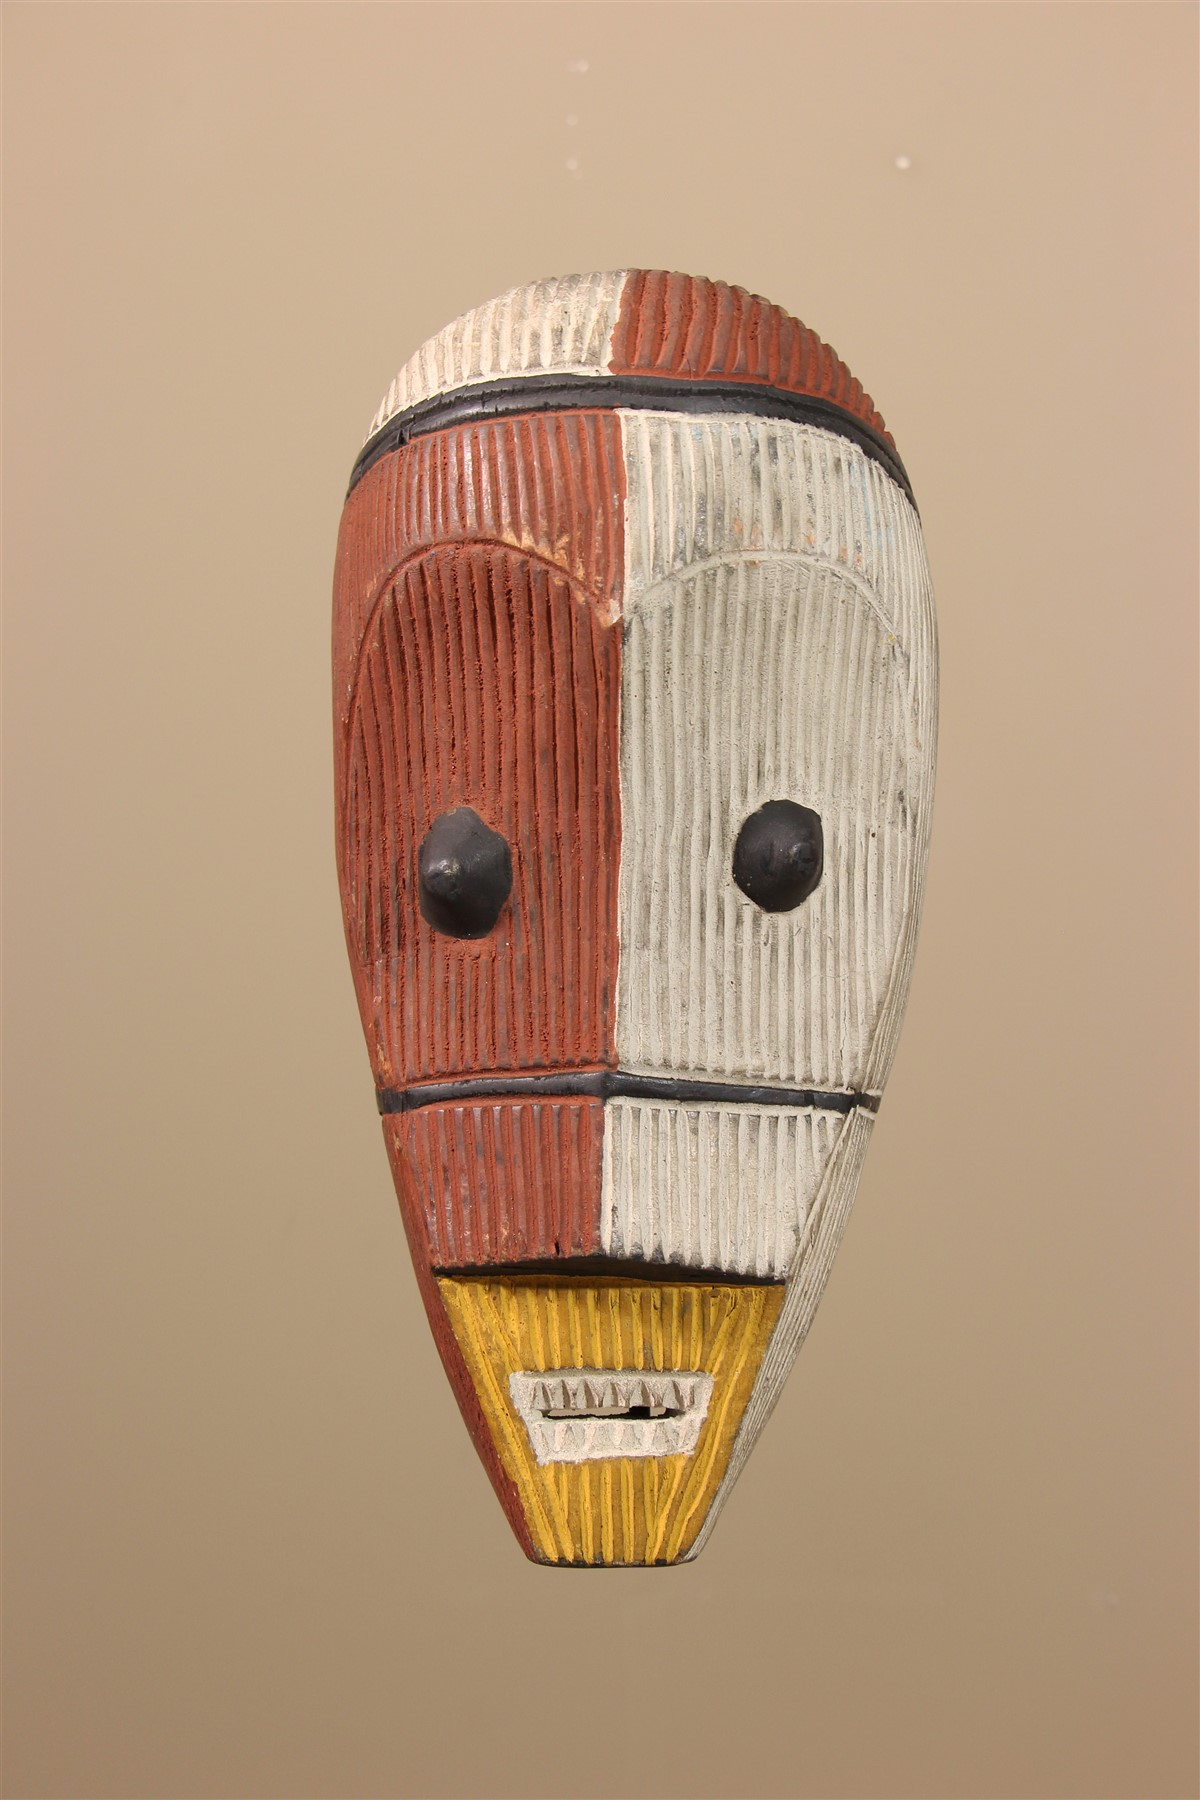 Masque africain Metoko - Déco africaine - Art africain traditionnel